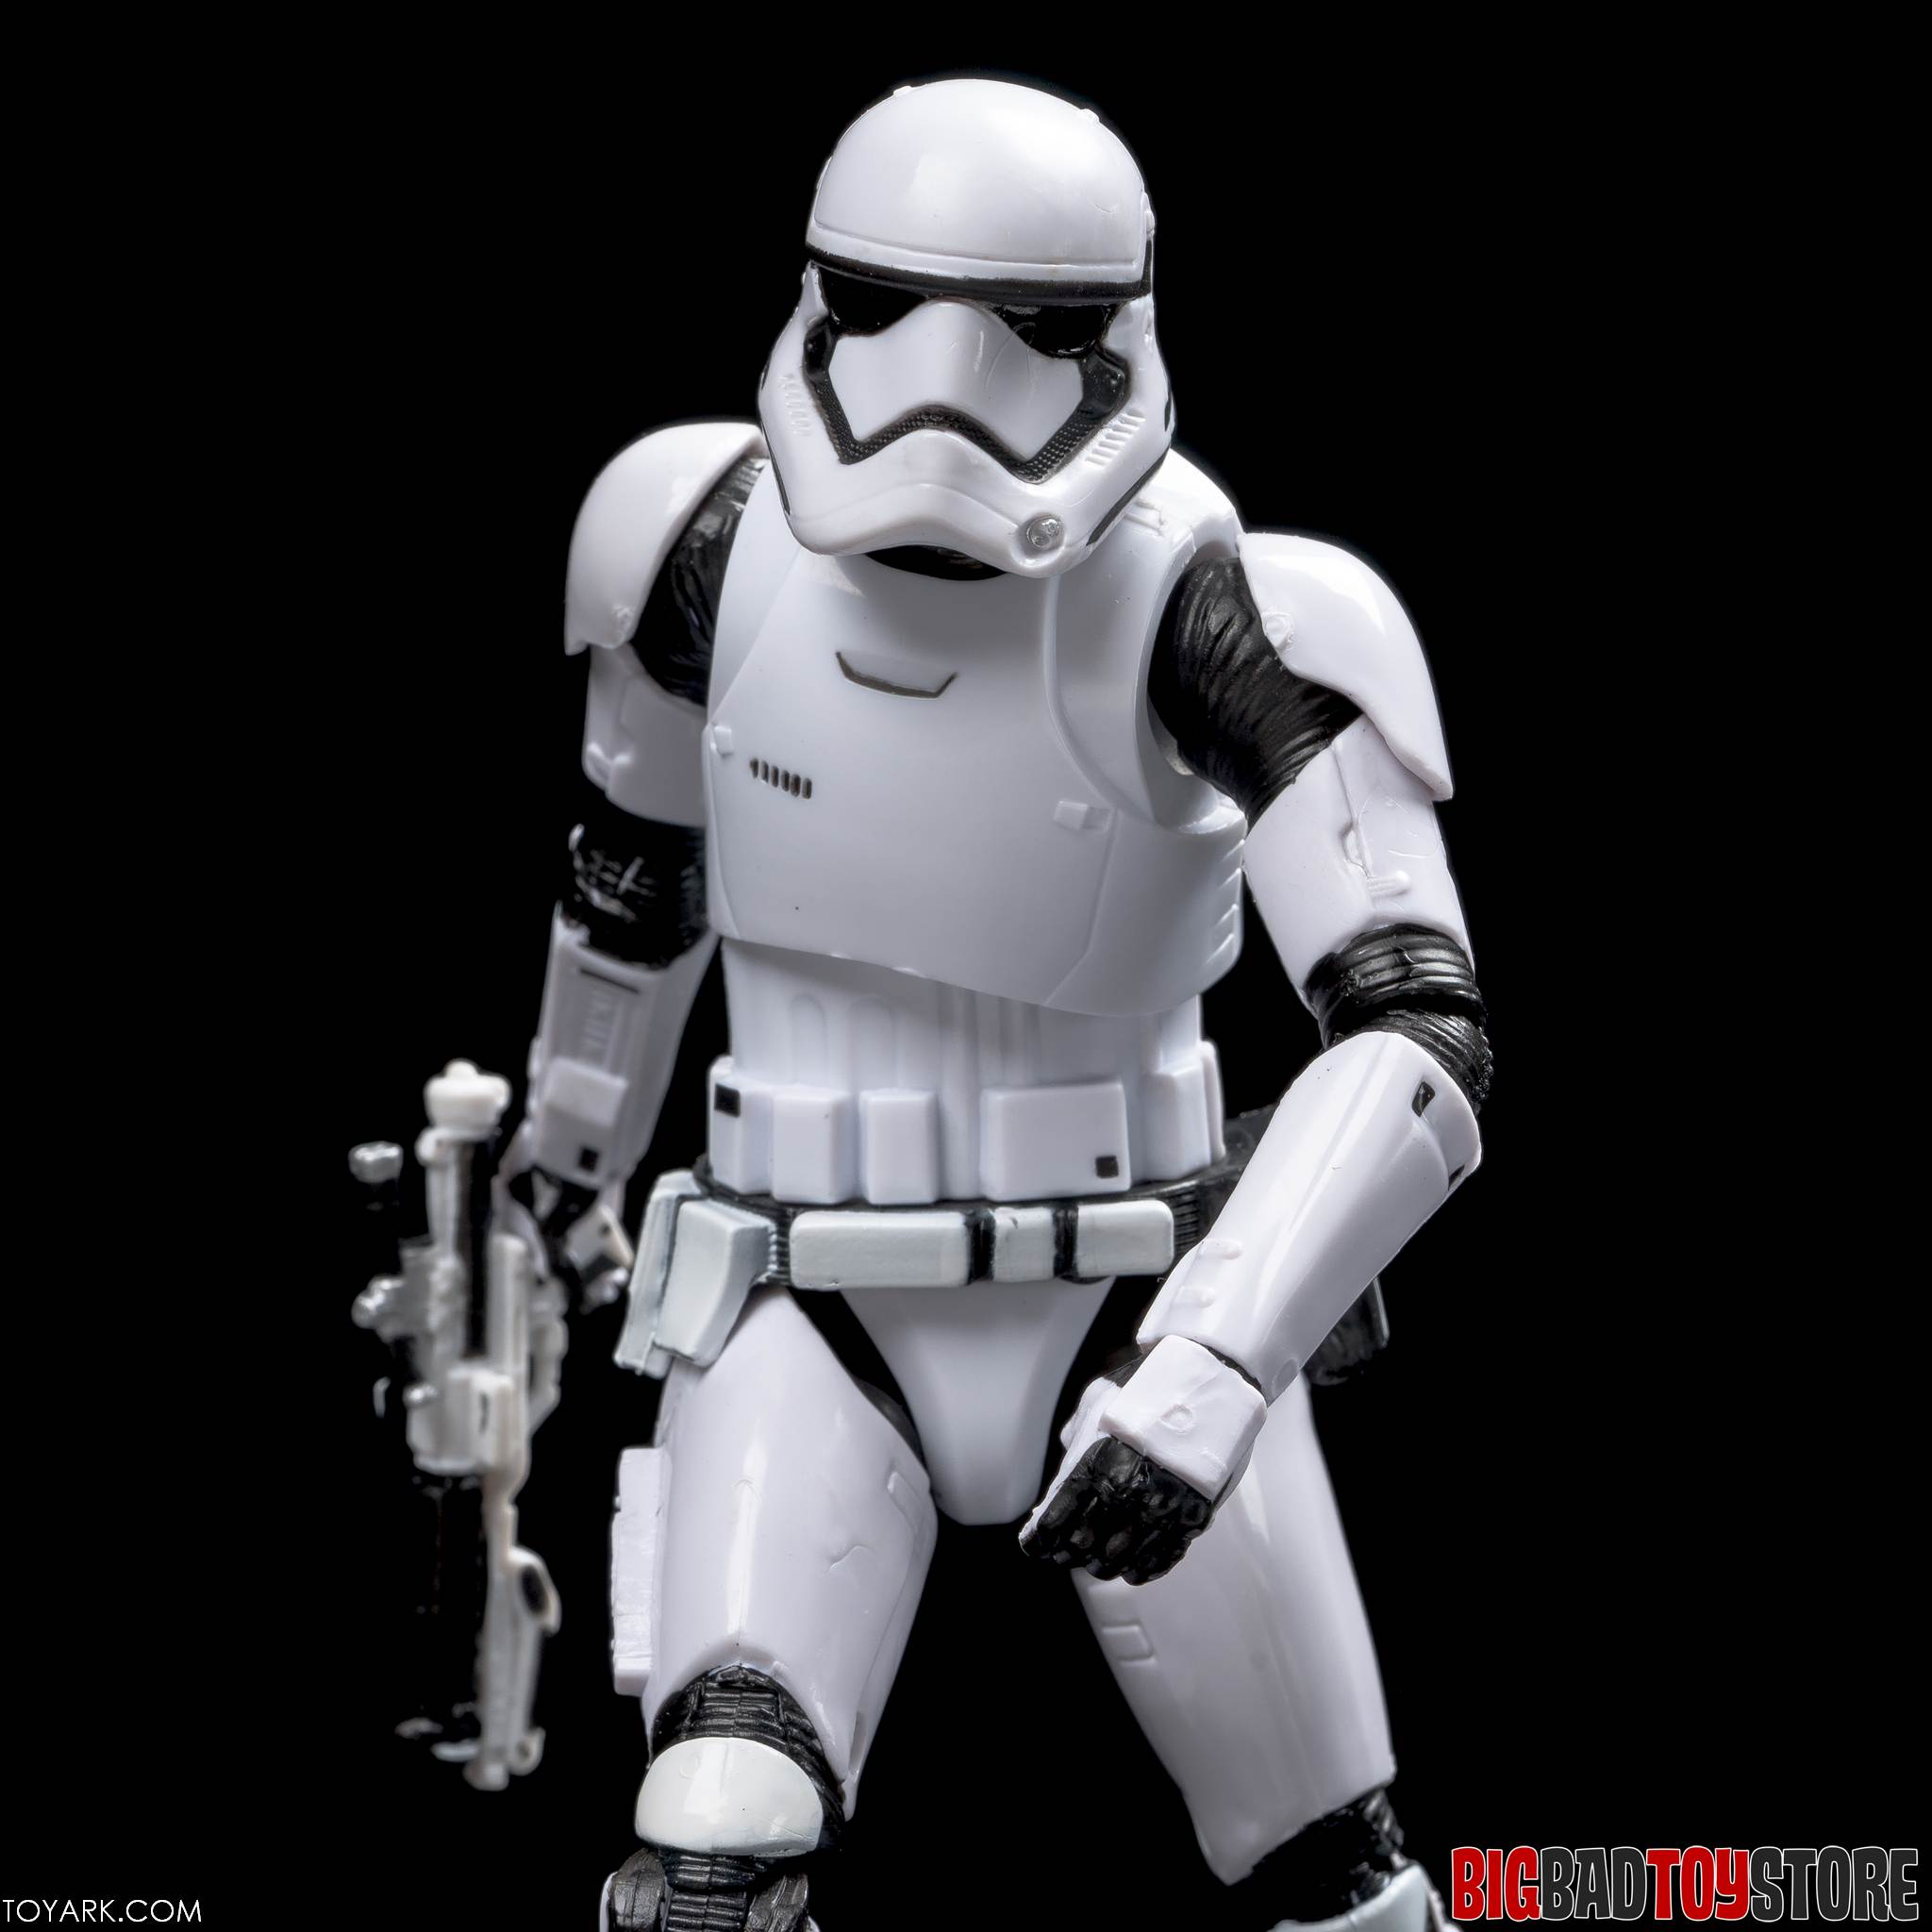 sdcc star wars black series first order stormtrooper photo shoot the toyark news. Black Bedroom Furniture Sets. Home Design Ideas